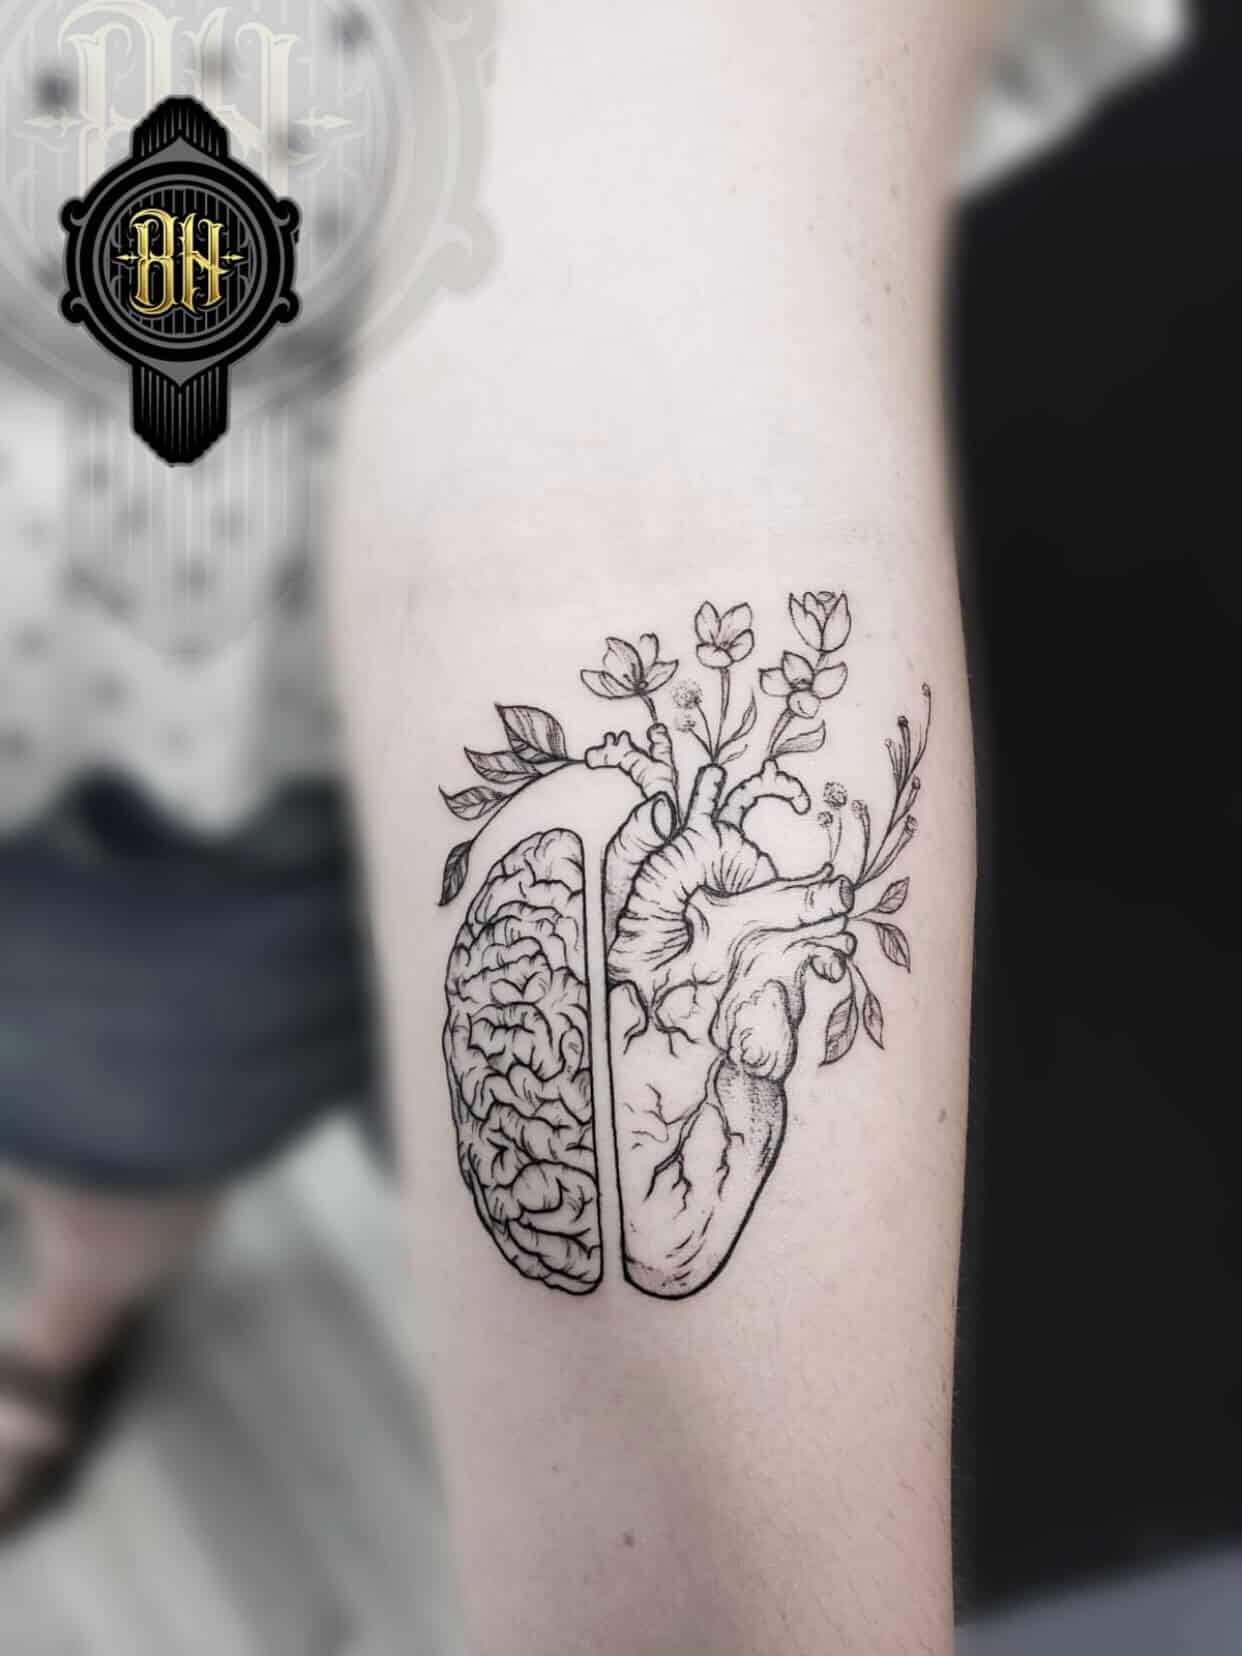 Blackwork - Black and White Tattoos in Fort Lauderdale | Bad Habits ...